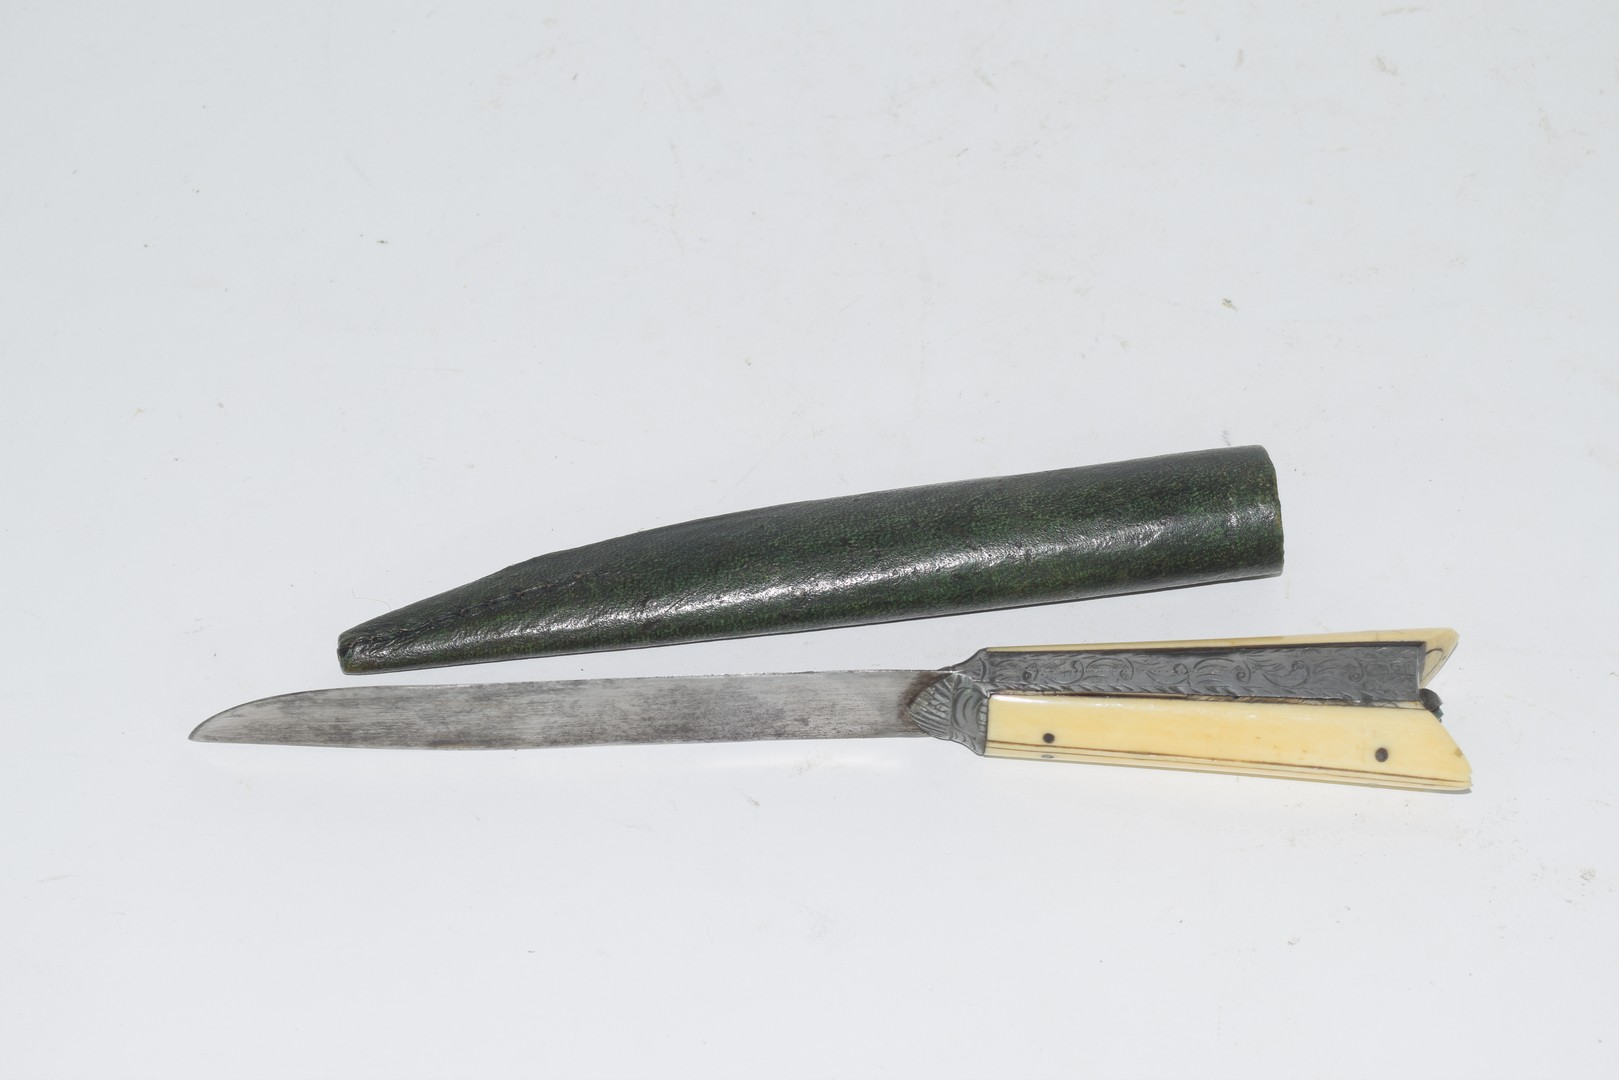 Knife with bone handle in leather sheath